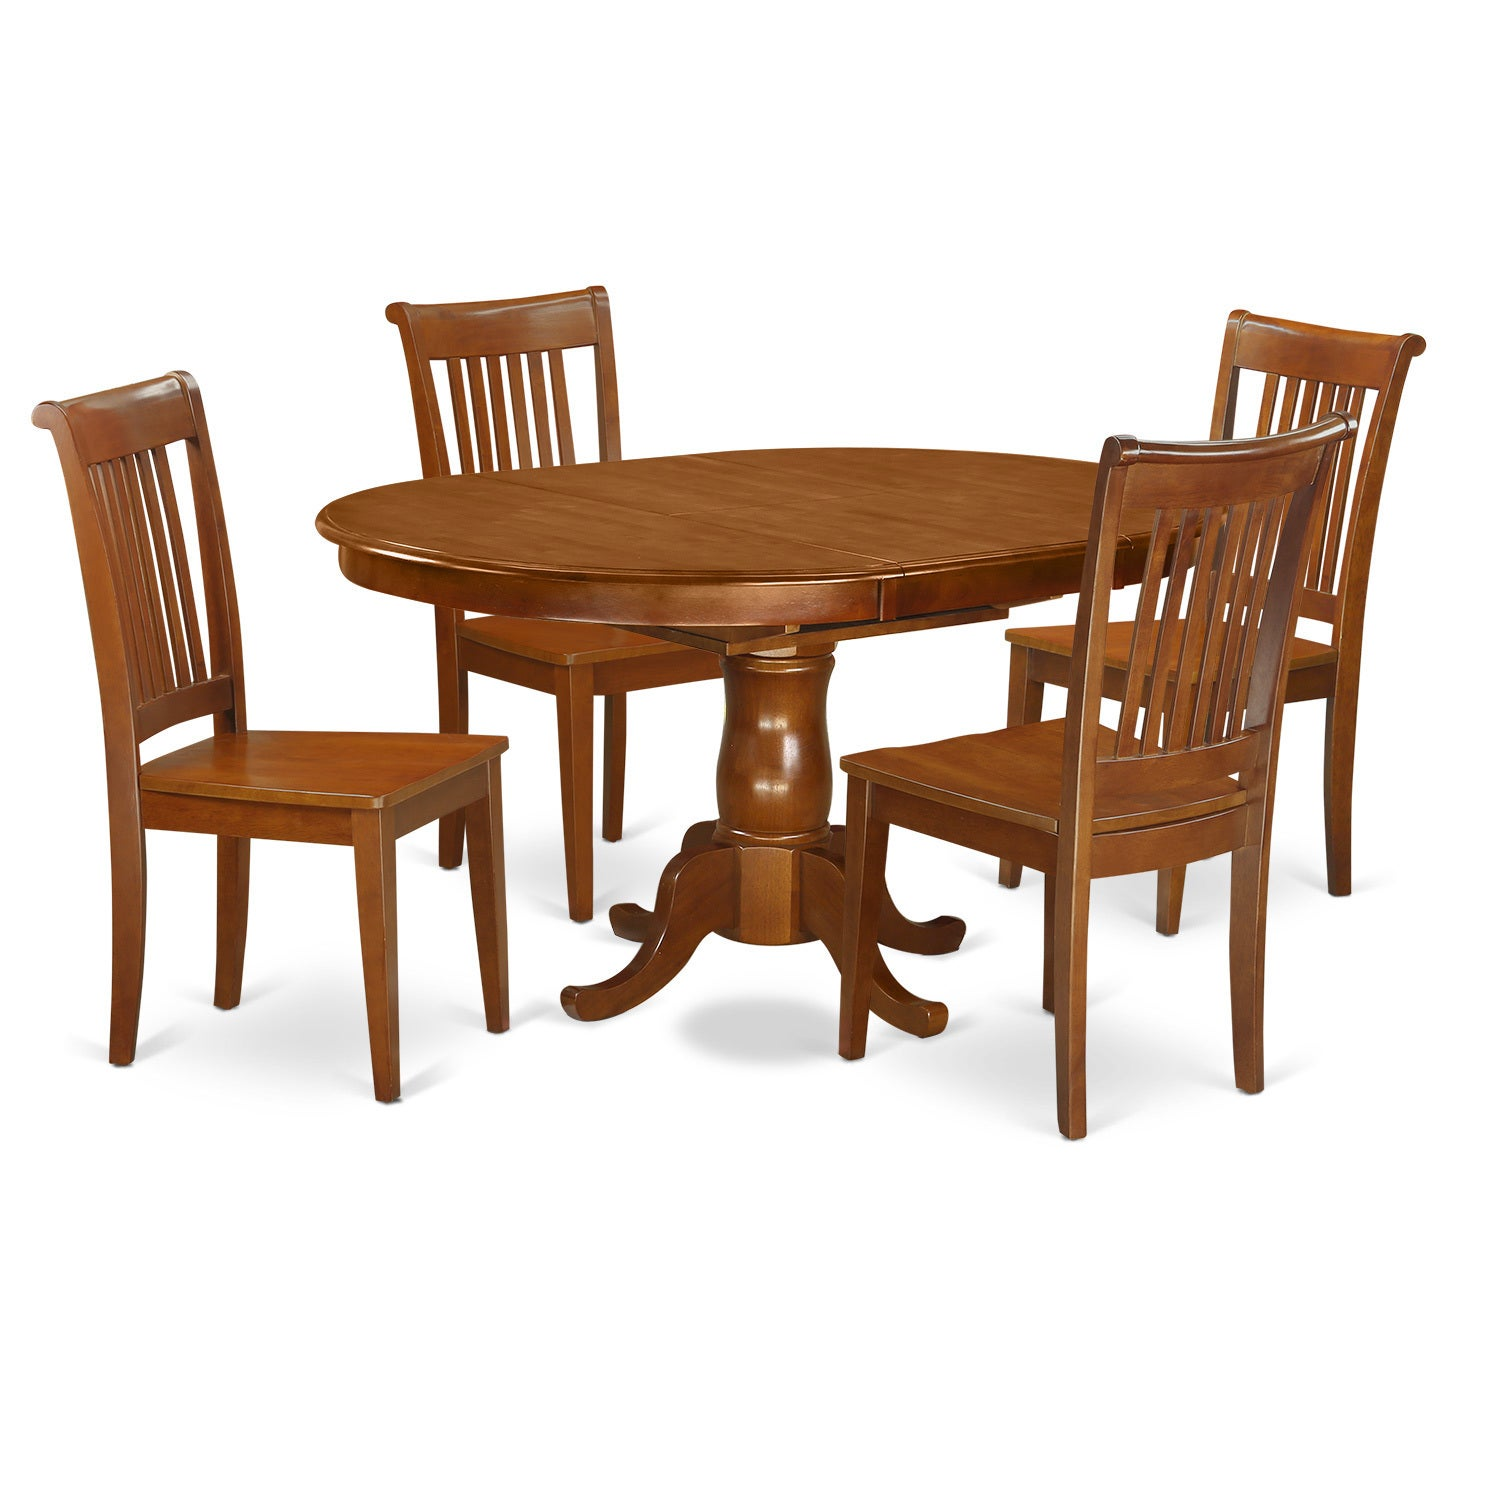 Shop traditional brown finish solid rubberwood 5 piece dining set with table and dining chairs free shipping today overstock com 12027632